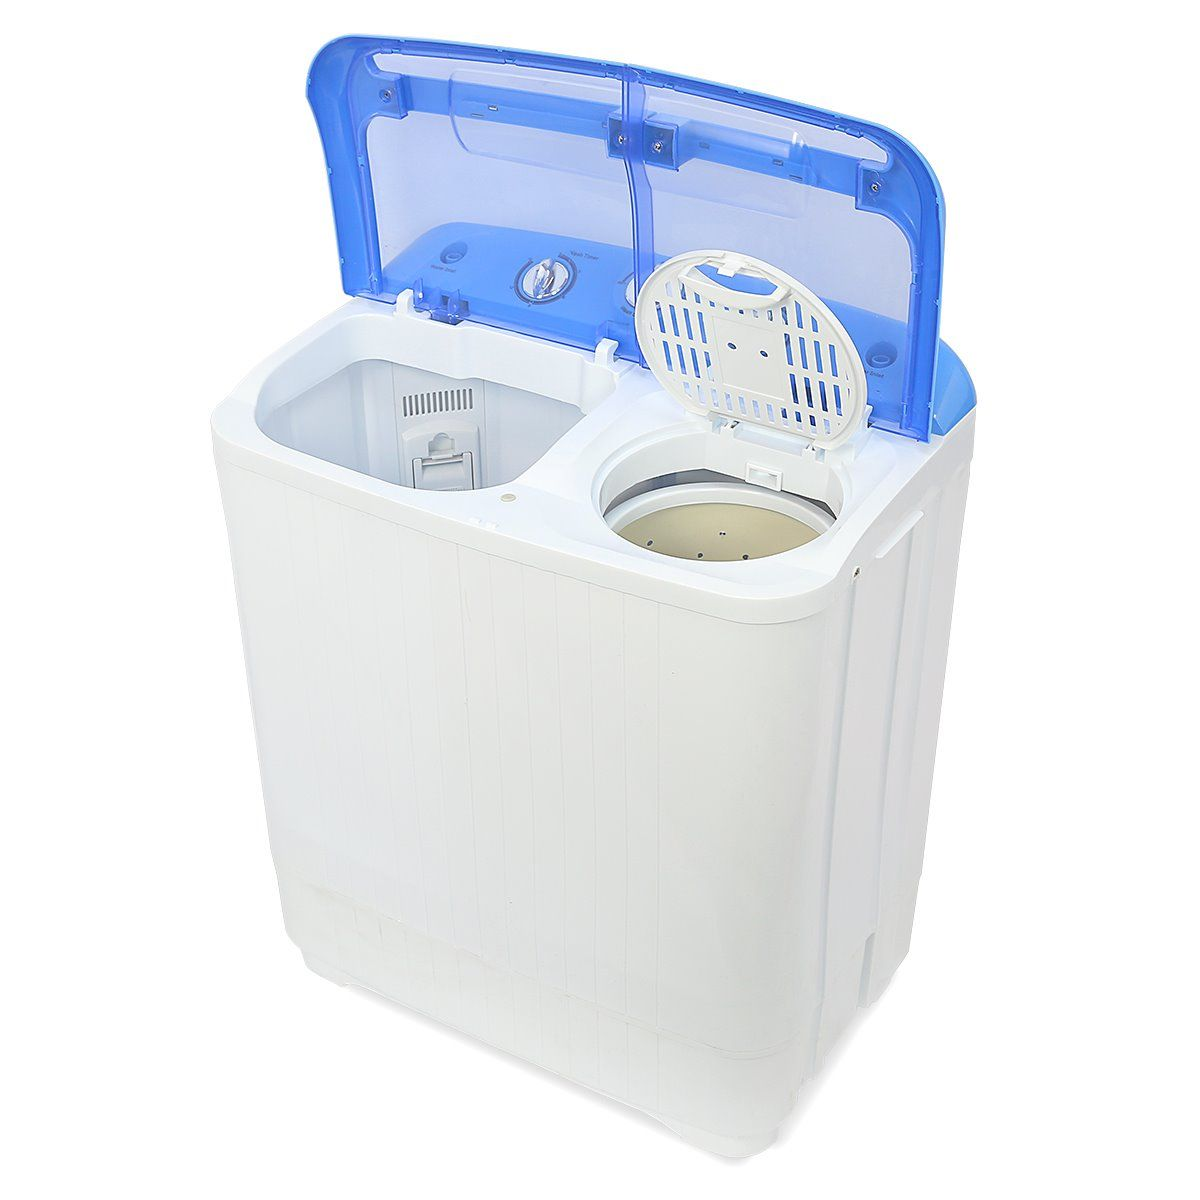 Some Of The Best Portable Washing Machines Online Laundry Room Storage Shelves Laundry Room Storage Compact Laundry